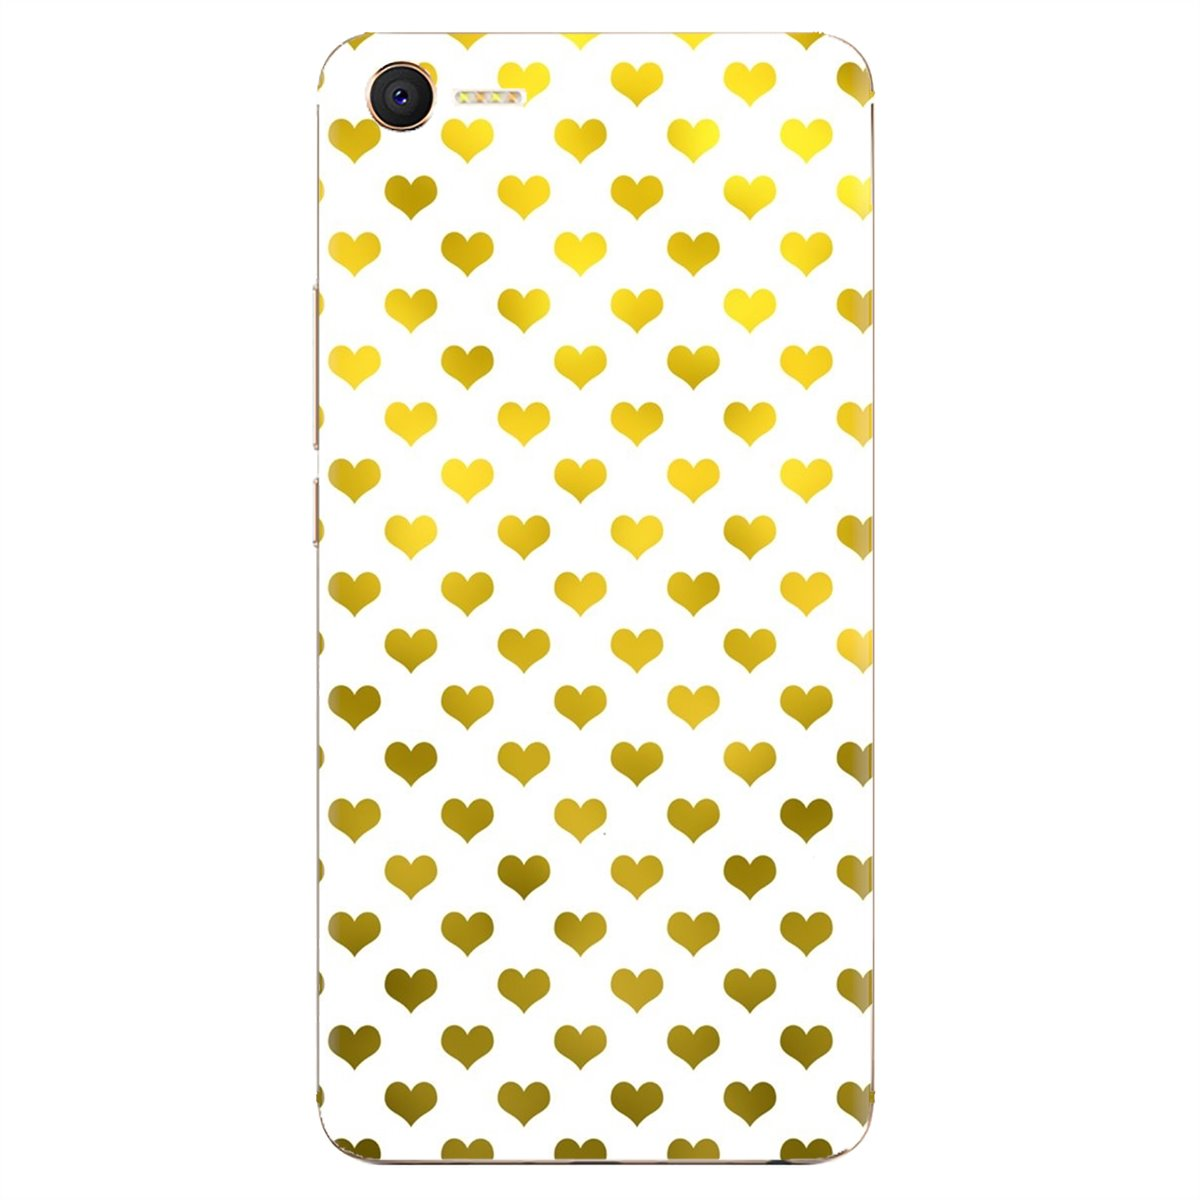 Pink And Yellow Wallpaper For Samsung Galaxy S6 S10e S10 Edge Lite Plus Core Grand Prime Alpha J1 Mini Cheap Silicone Phone Case Fitted Cases Aliexpress